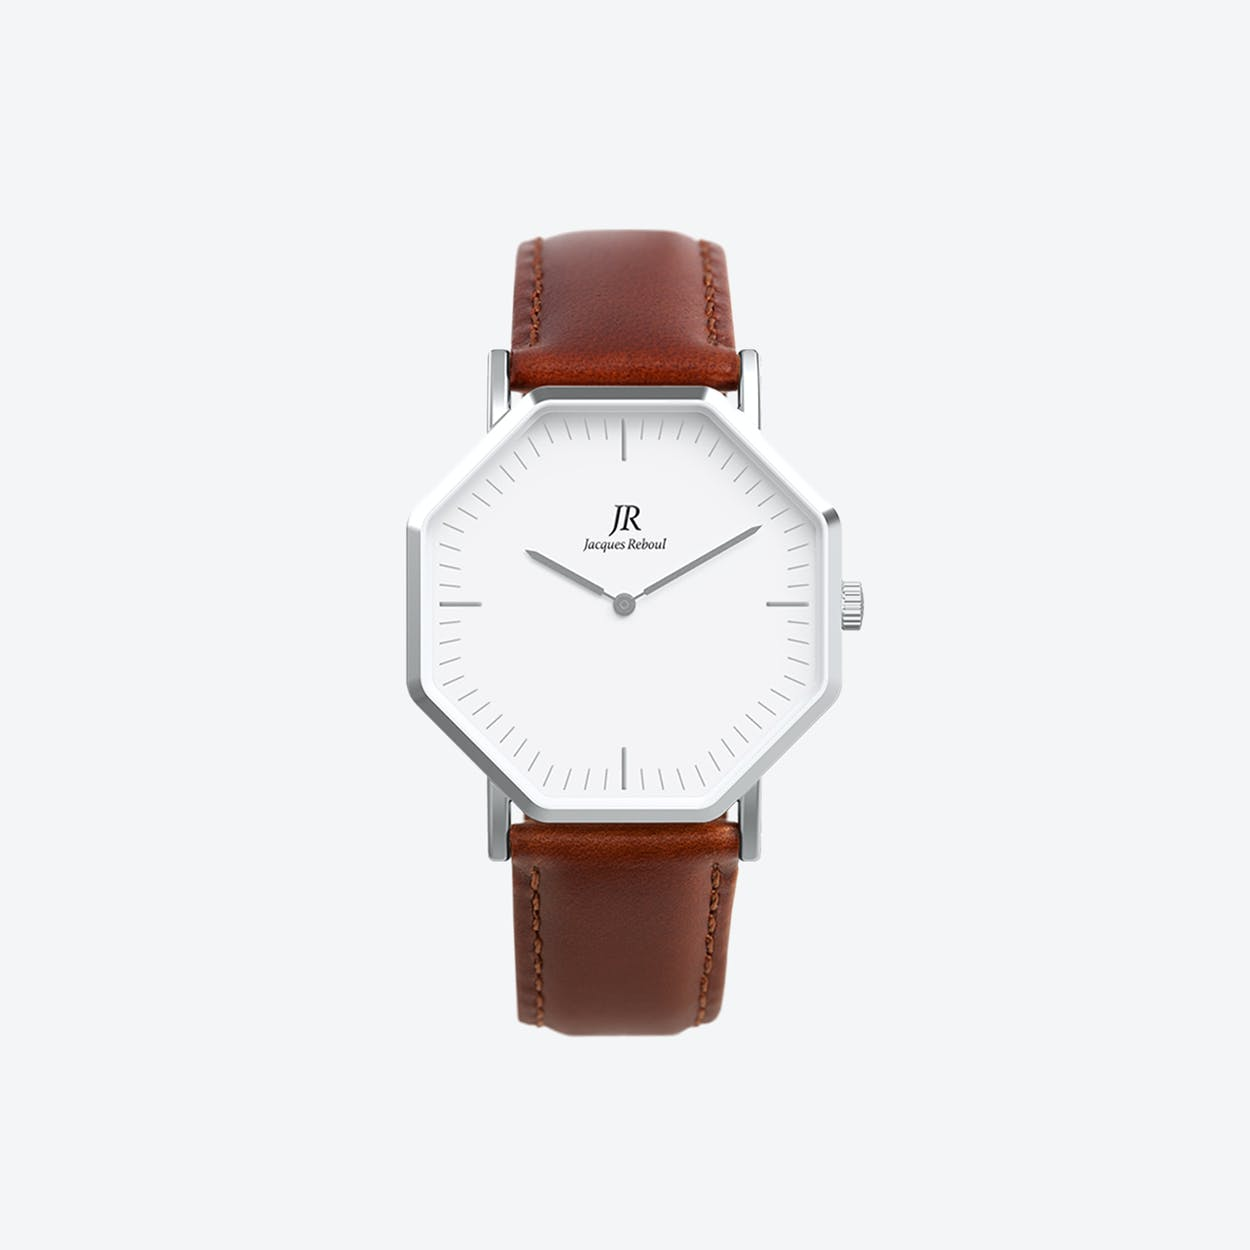 Premier Classic Silver Hexagonal Watch with Brown Leather Strap 44mm